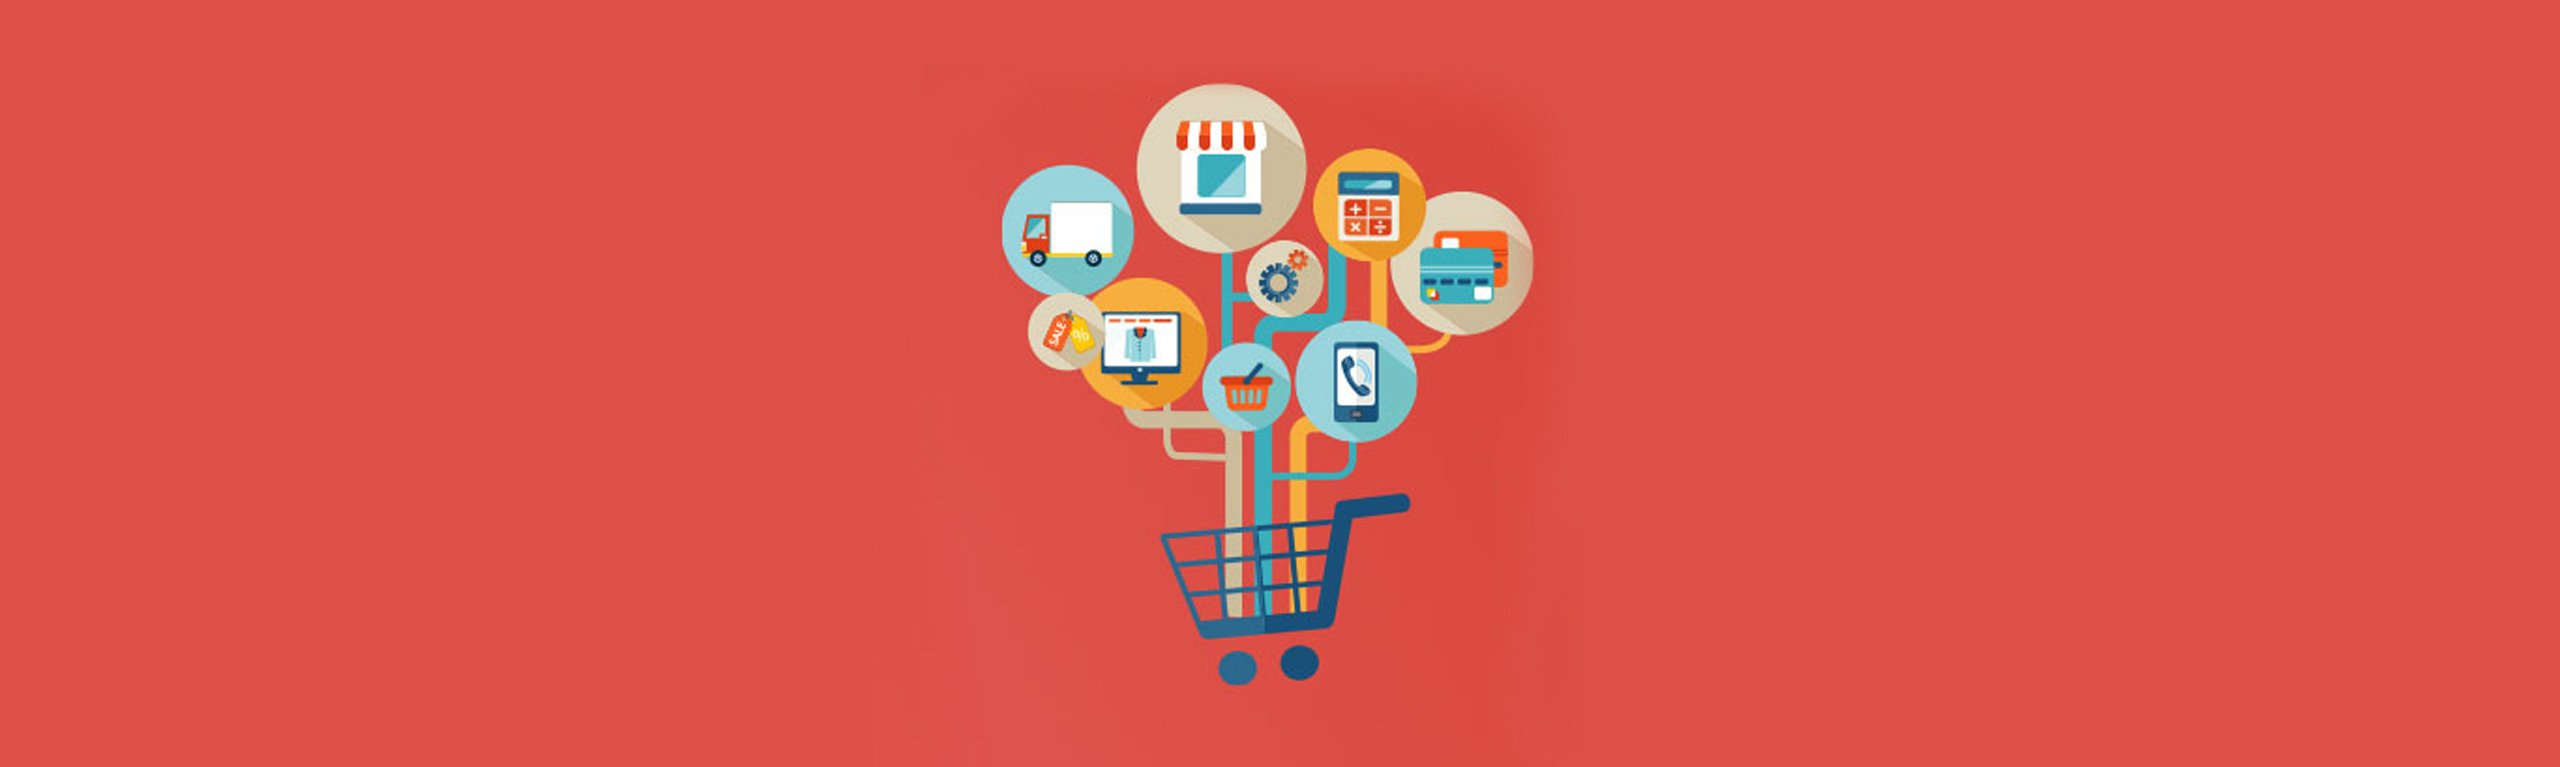 Shopping cart with ecommerce icons on red background